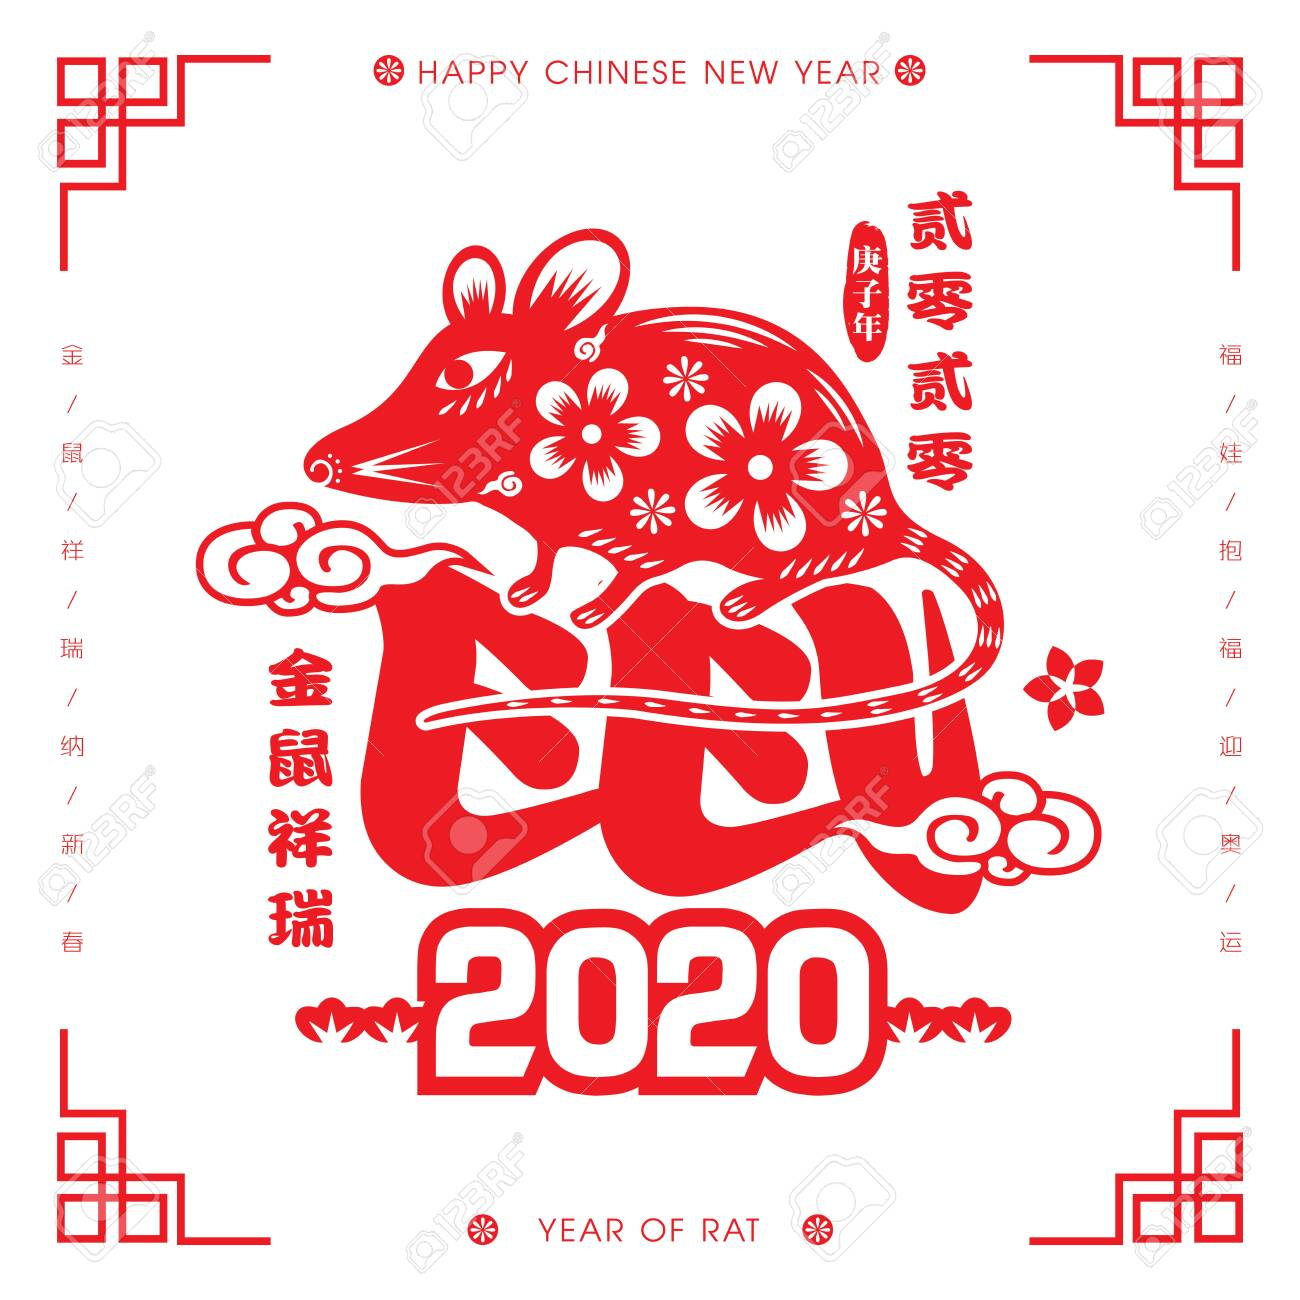 2020 Chinese New Year Paper Cutting Year of the Rat Vector Illustration (Chinese Translation: Auspicious Year of the rat) - 120431714